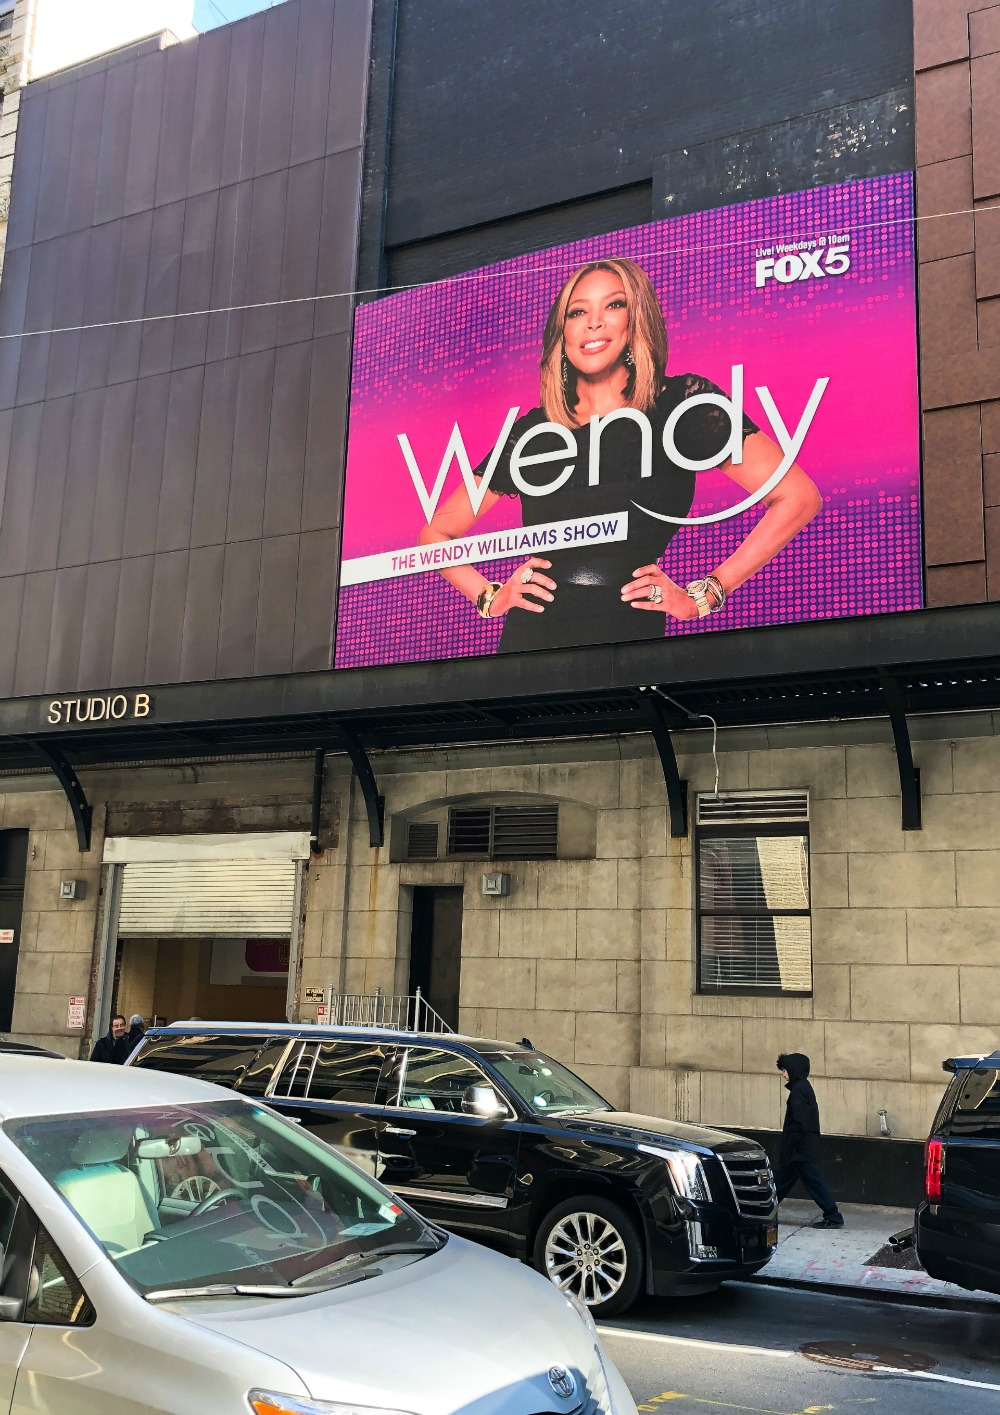 Affordable New York City Travel Guide I The Wendy WIlliams Show #Travel #NYC #TravelGuide